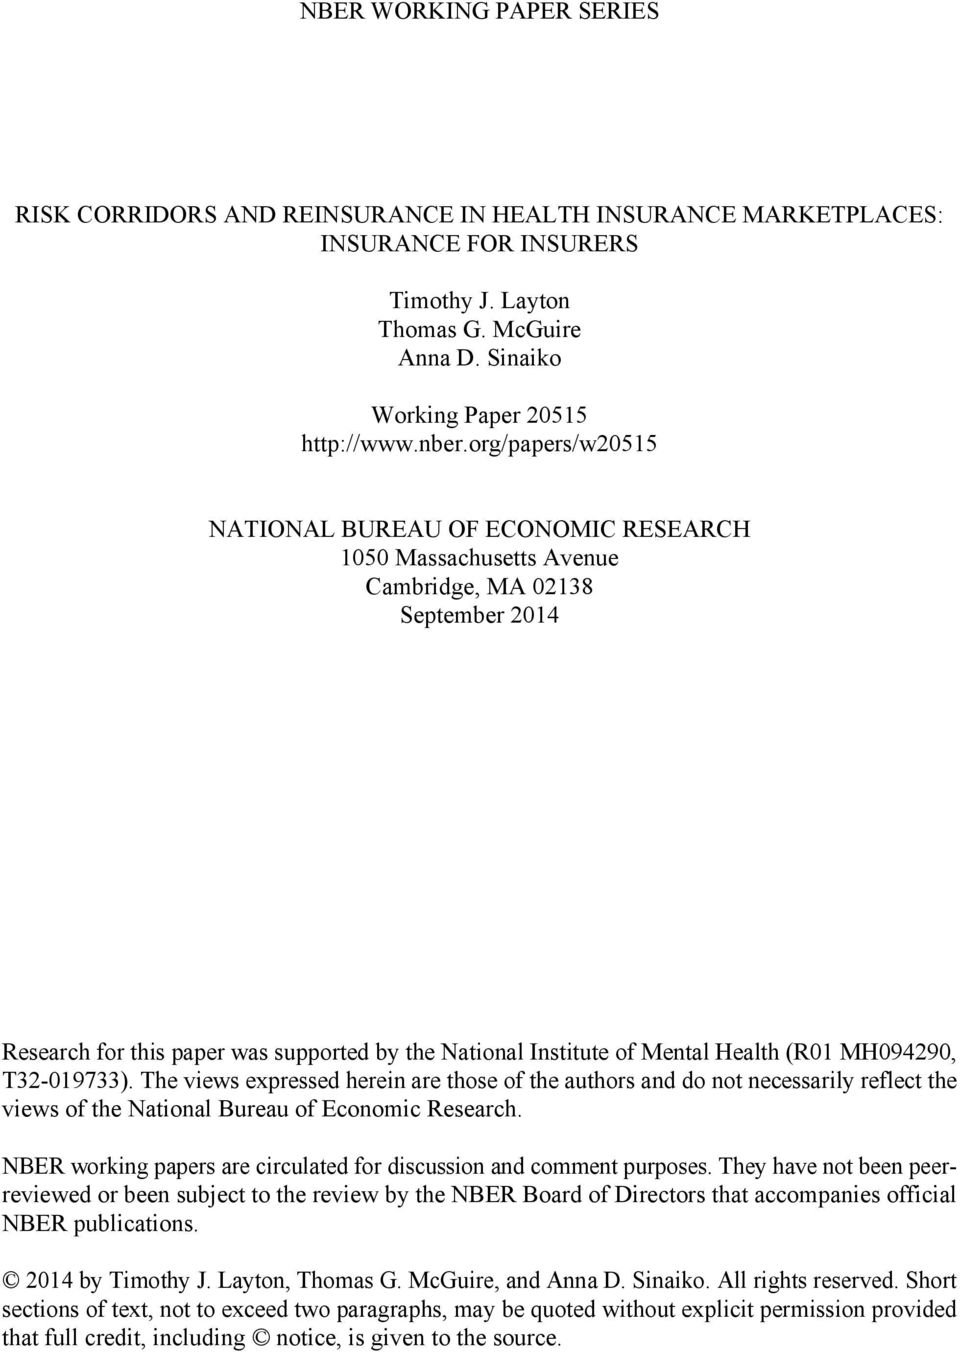 Health (R01 MH094290, T32-019733). The views expressed herein are those of the authors and do not necessarily reflect the views of the National Bureau of Economic Research.